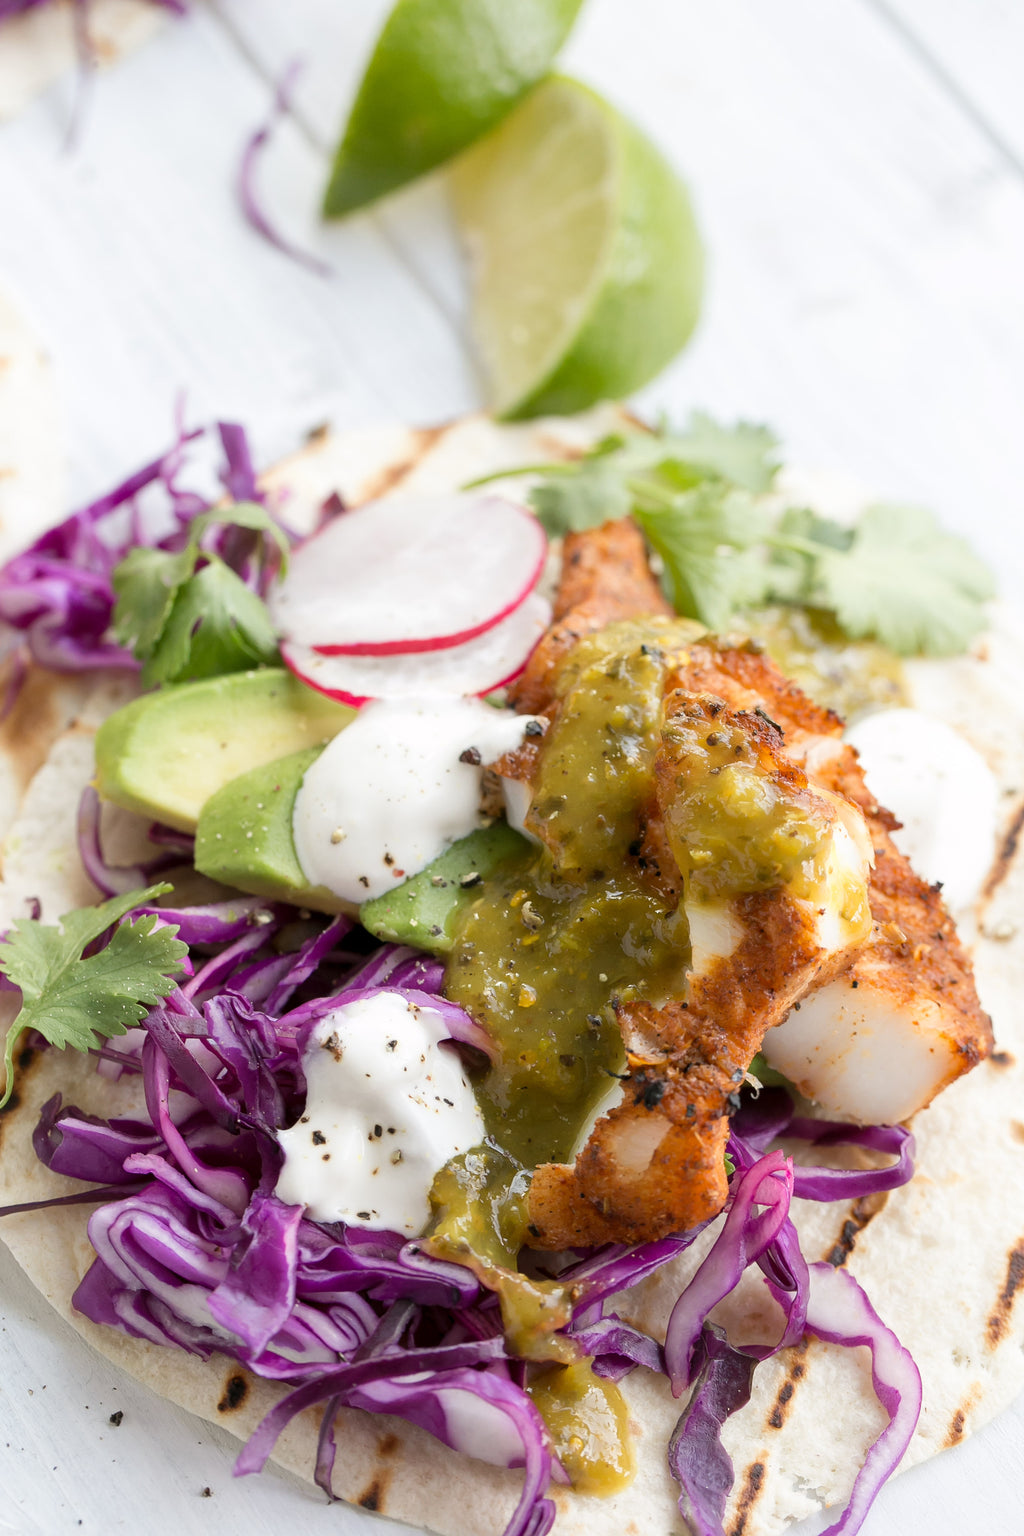 Grilled Fish Tacos with Salsa Verde